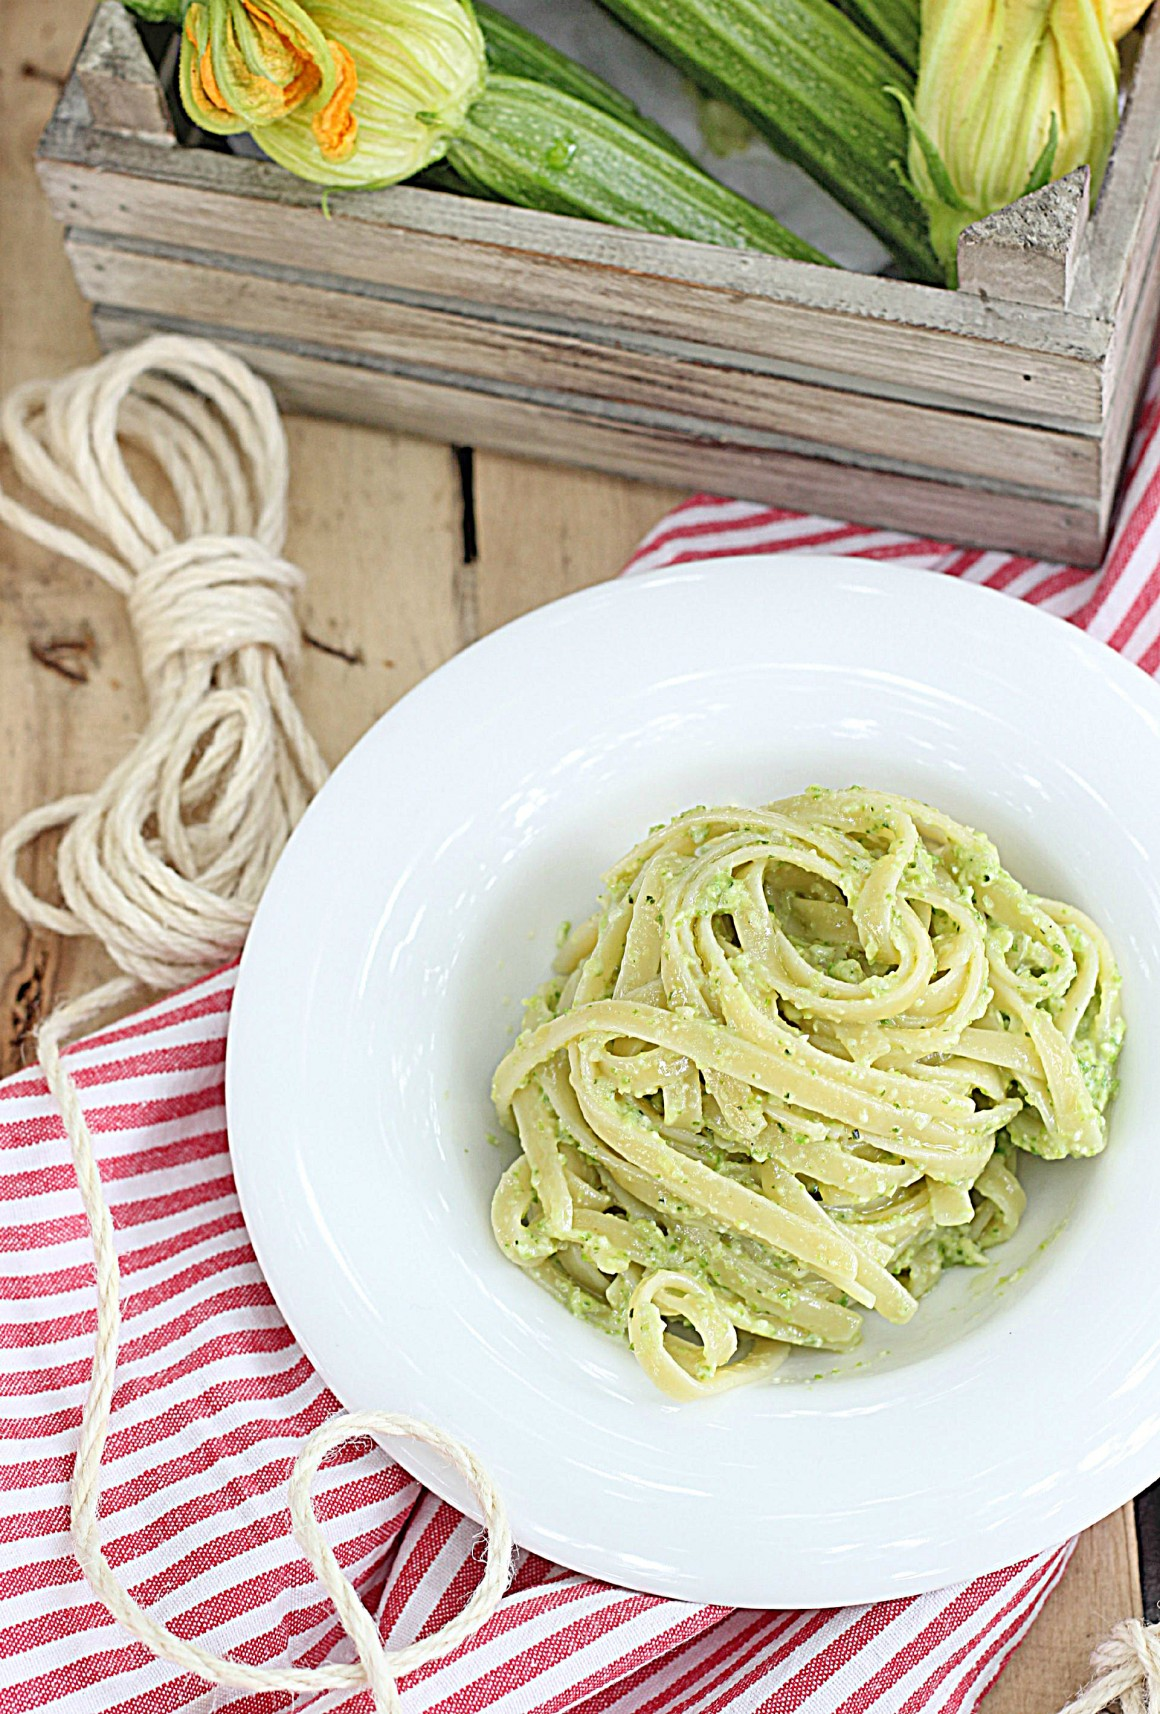 Linguine al pesto di zucchine_Ifood 2